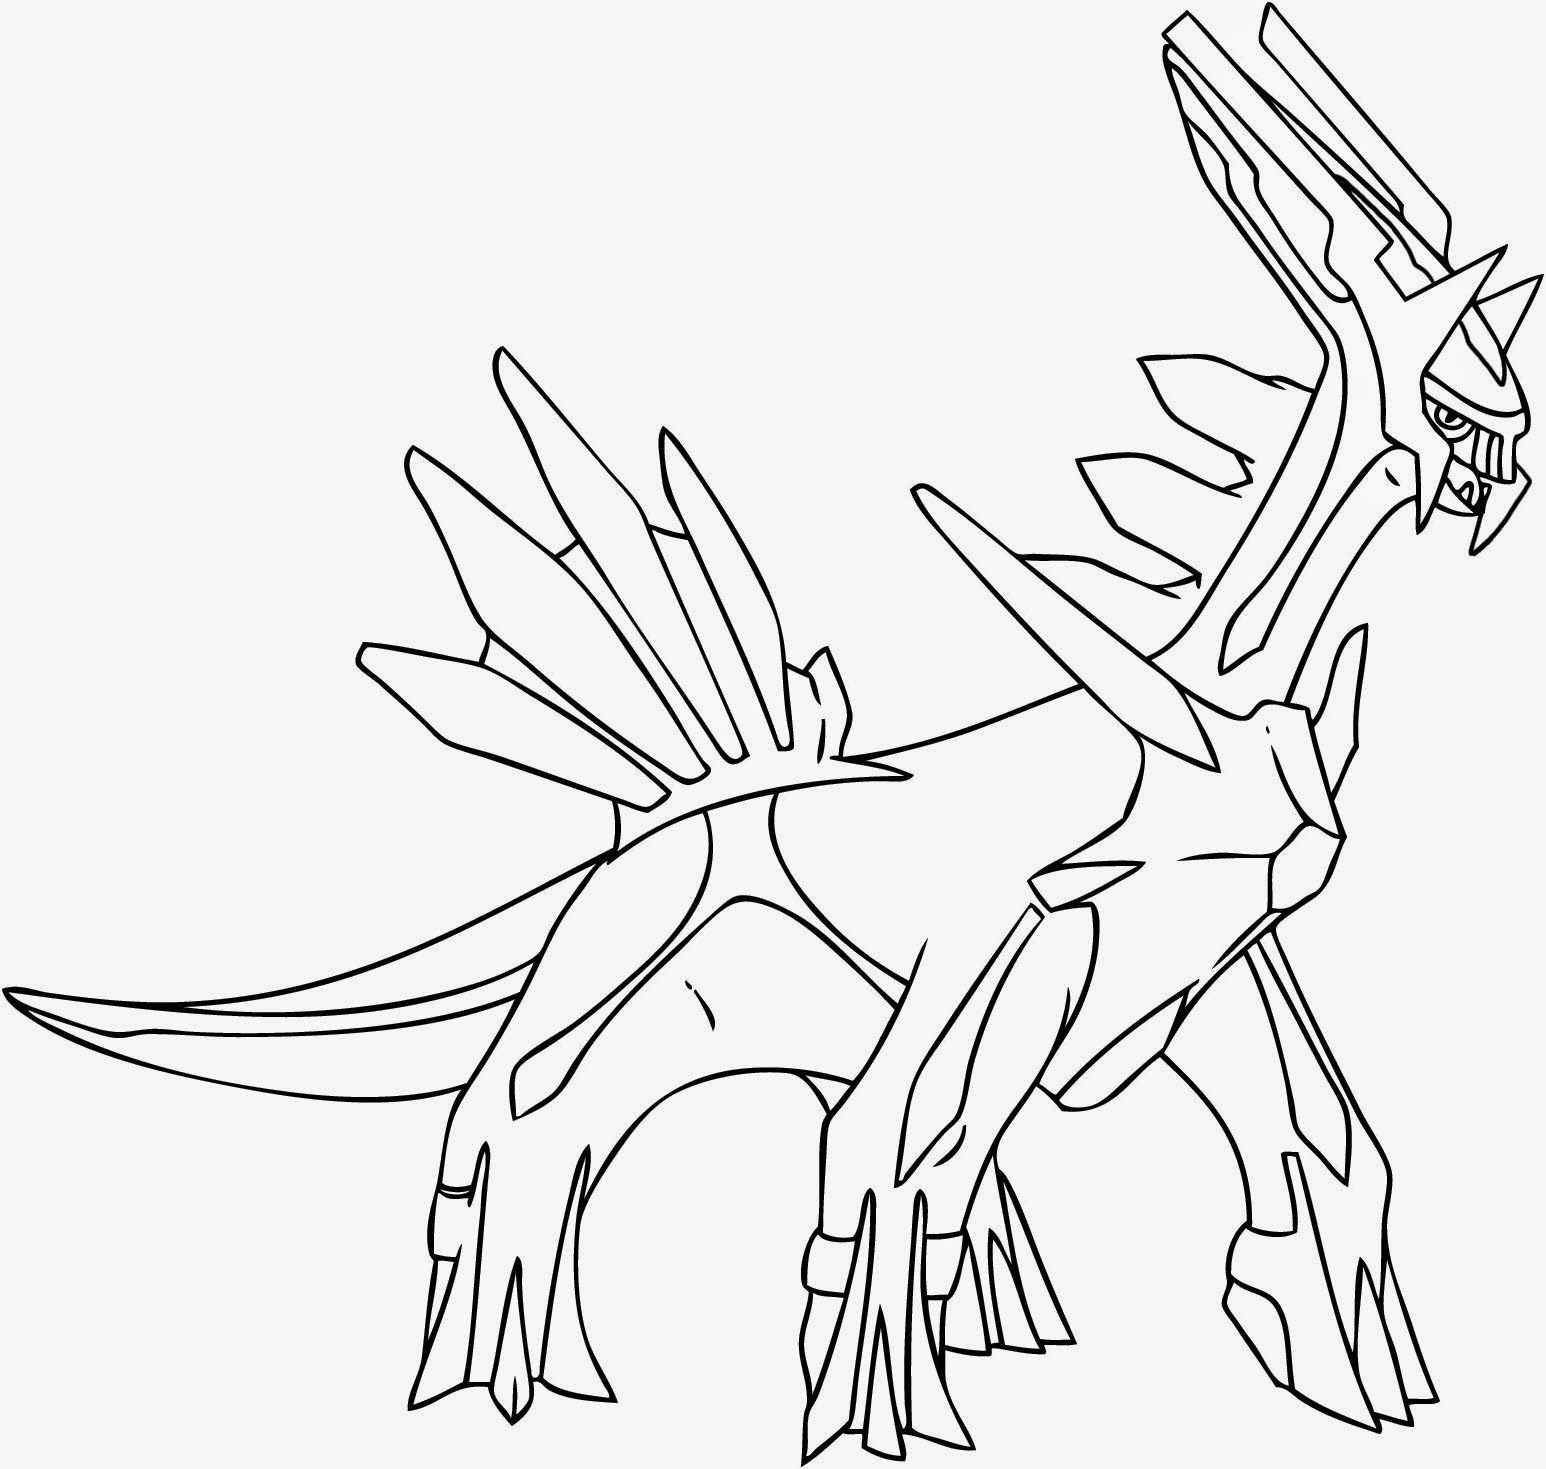 Coloring Pages: Pokemon Coloring Pages Free and Printable